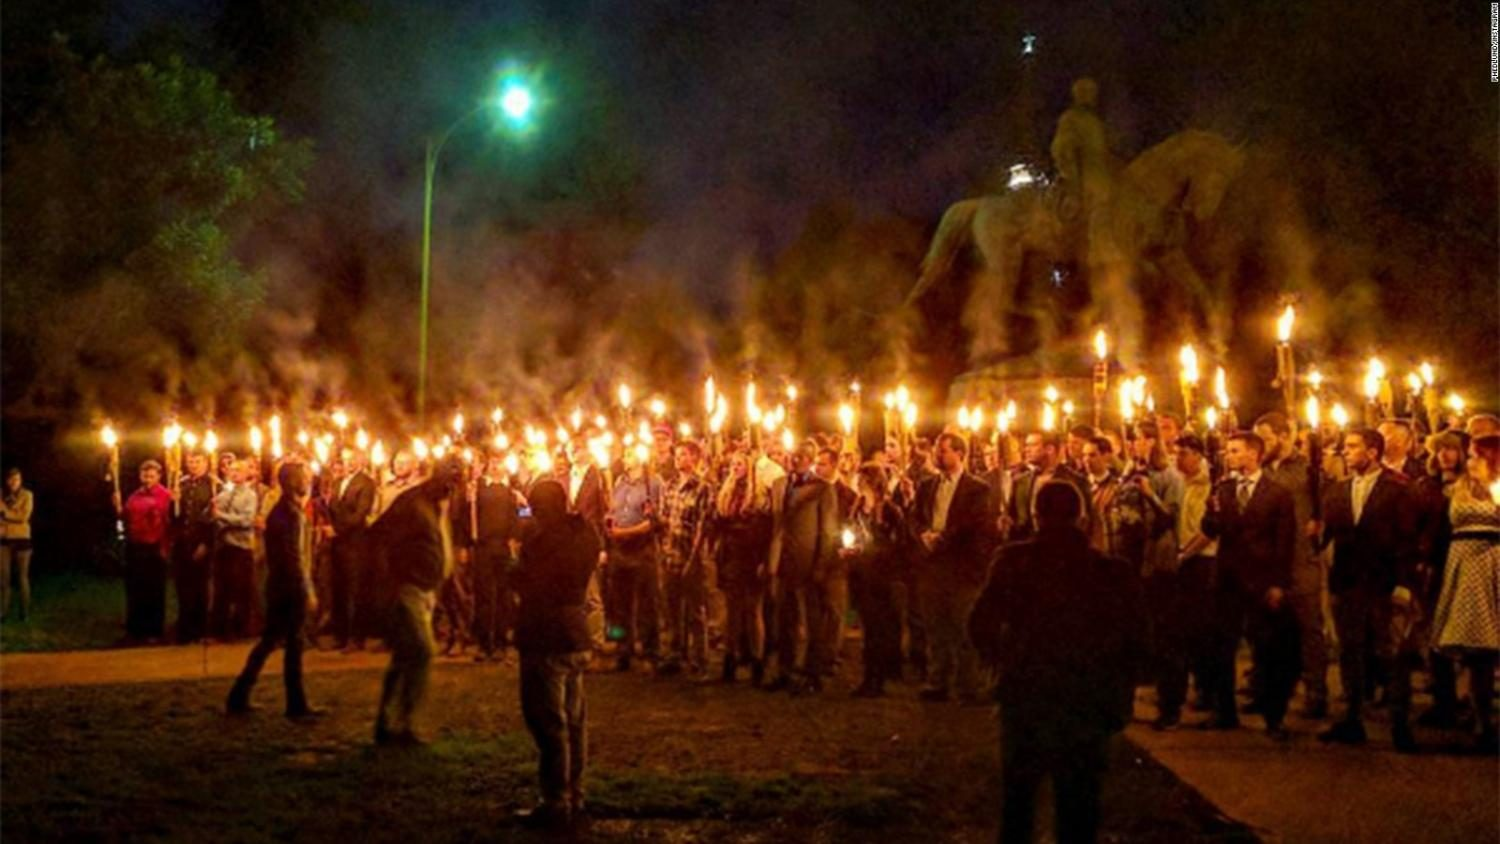 Protests get heated in Charlottesville